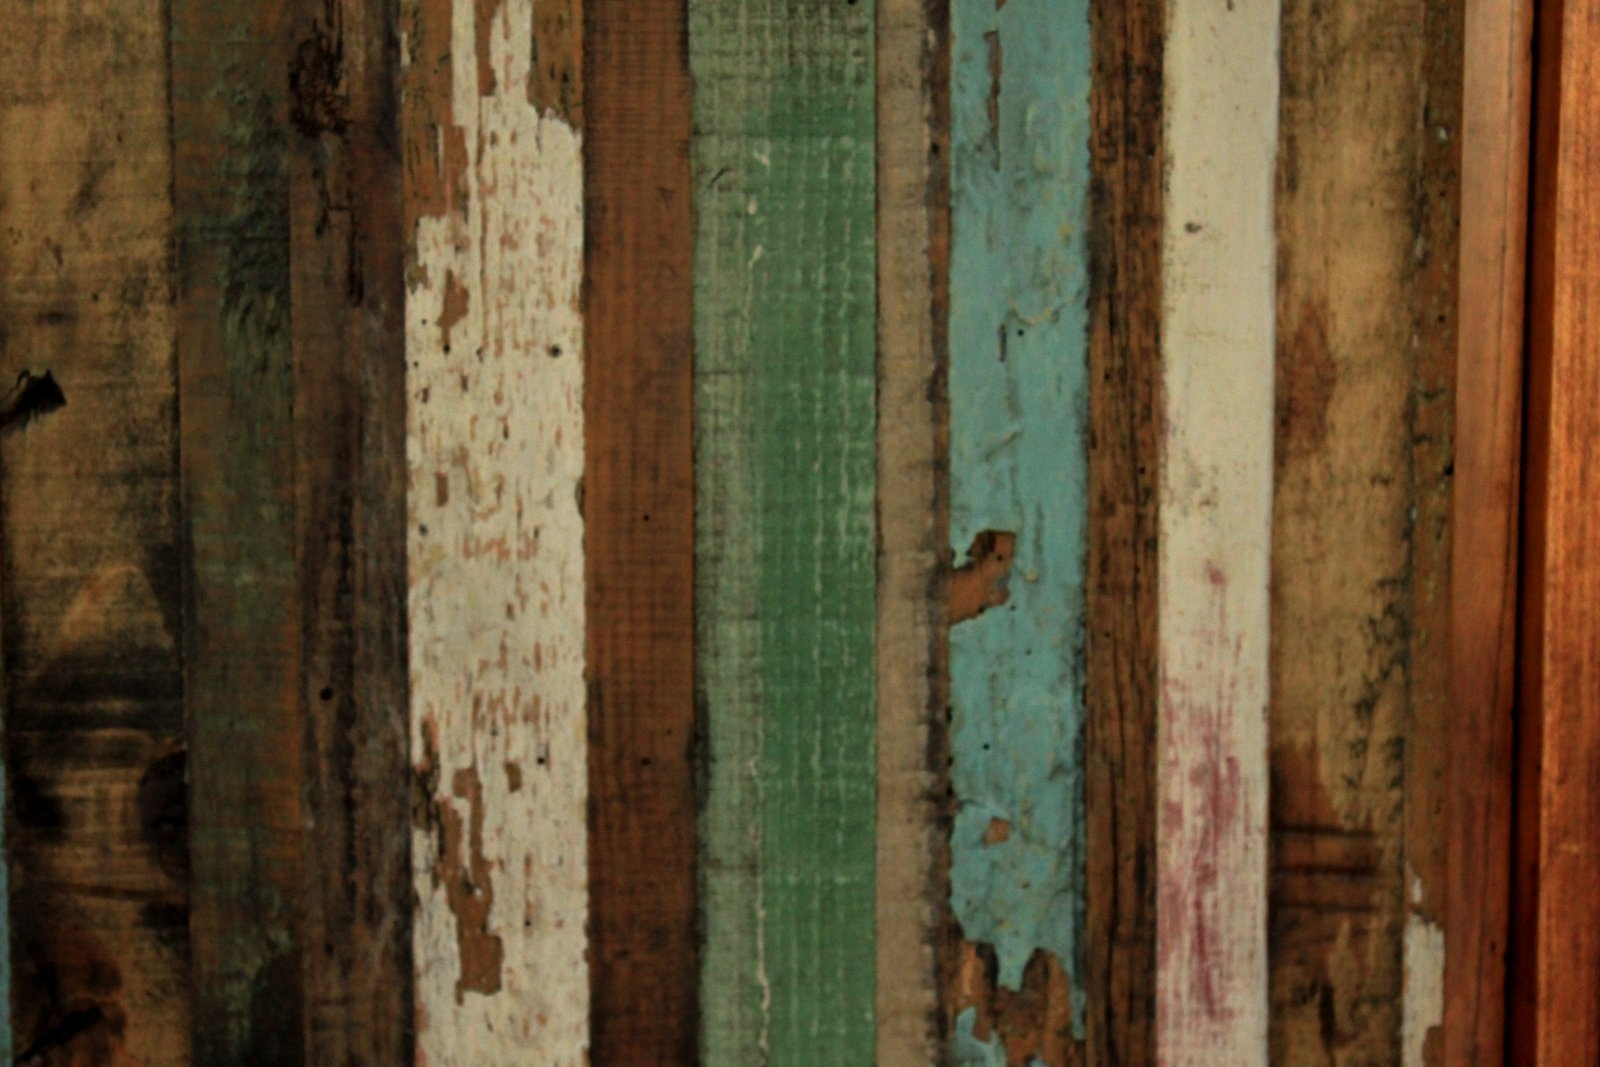 Texture Rustic Wood by Pomis 1600x1067